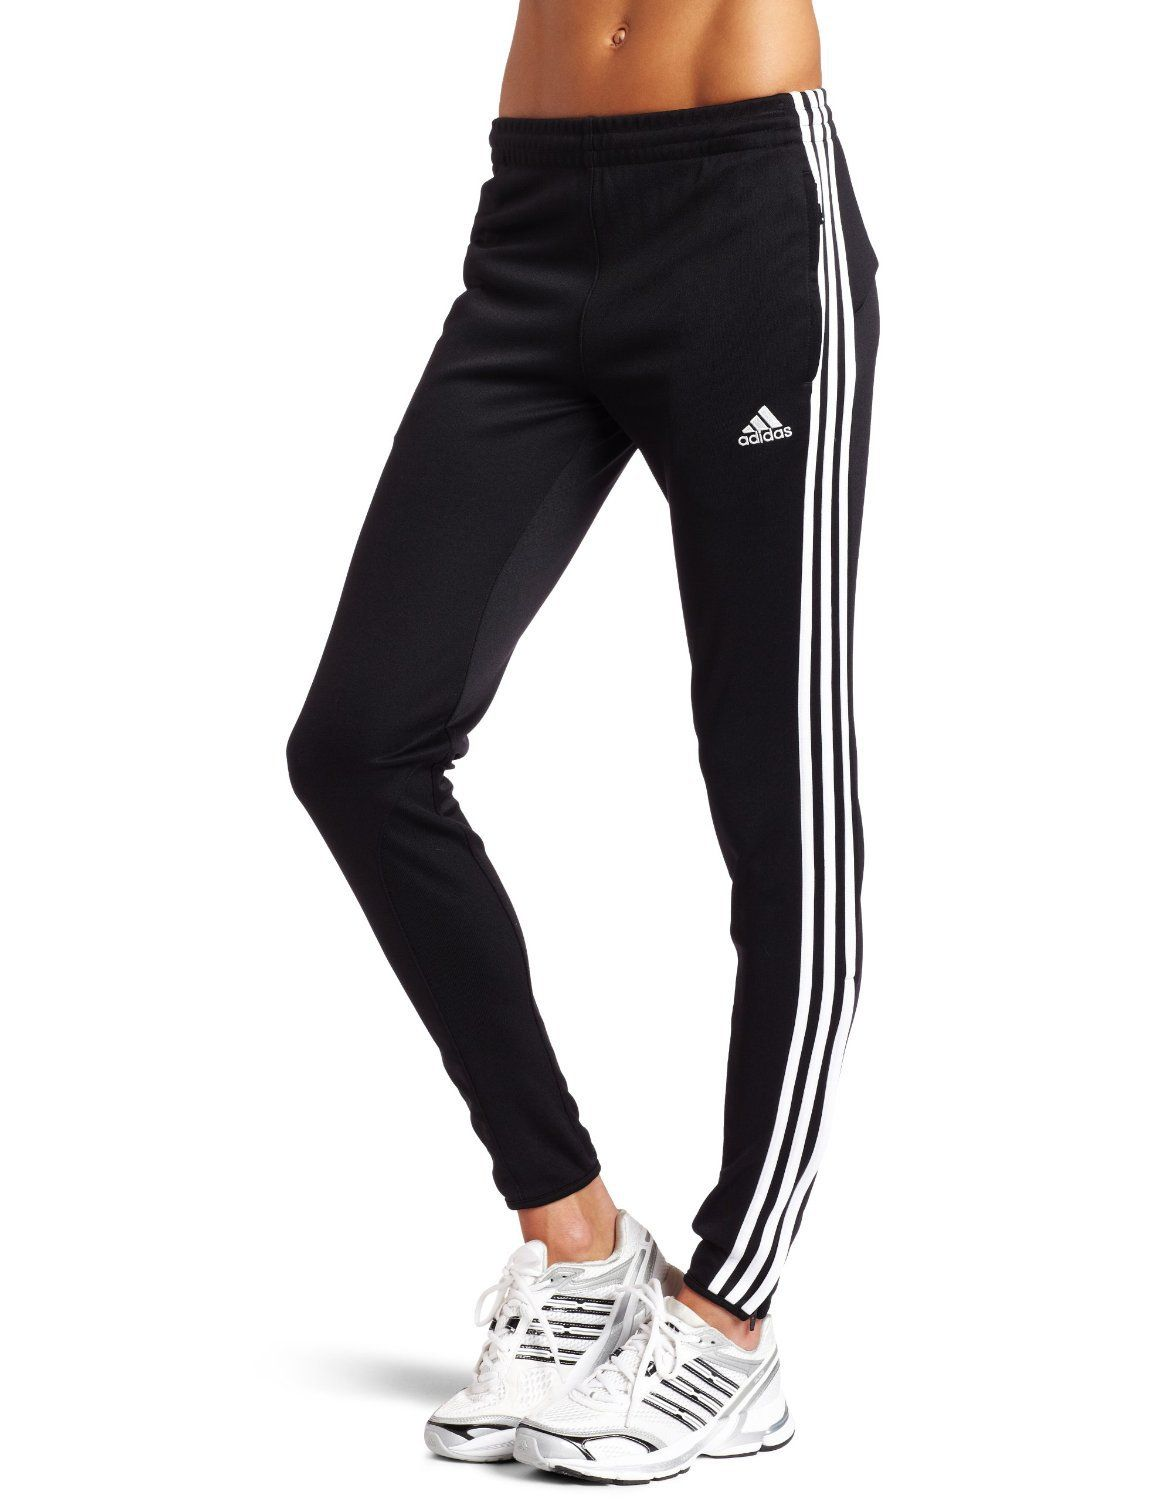 6a9c058f8abd I want these Adidas training pants regardless whether I play soccer or not.   )